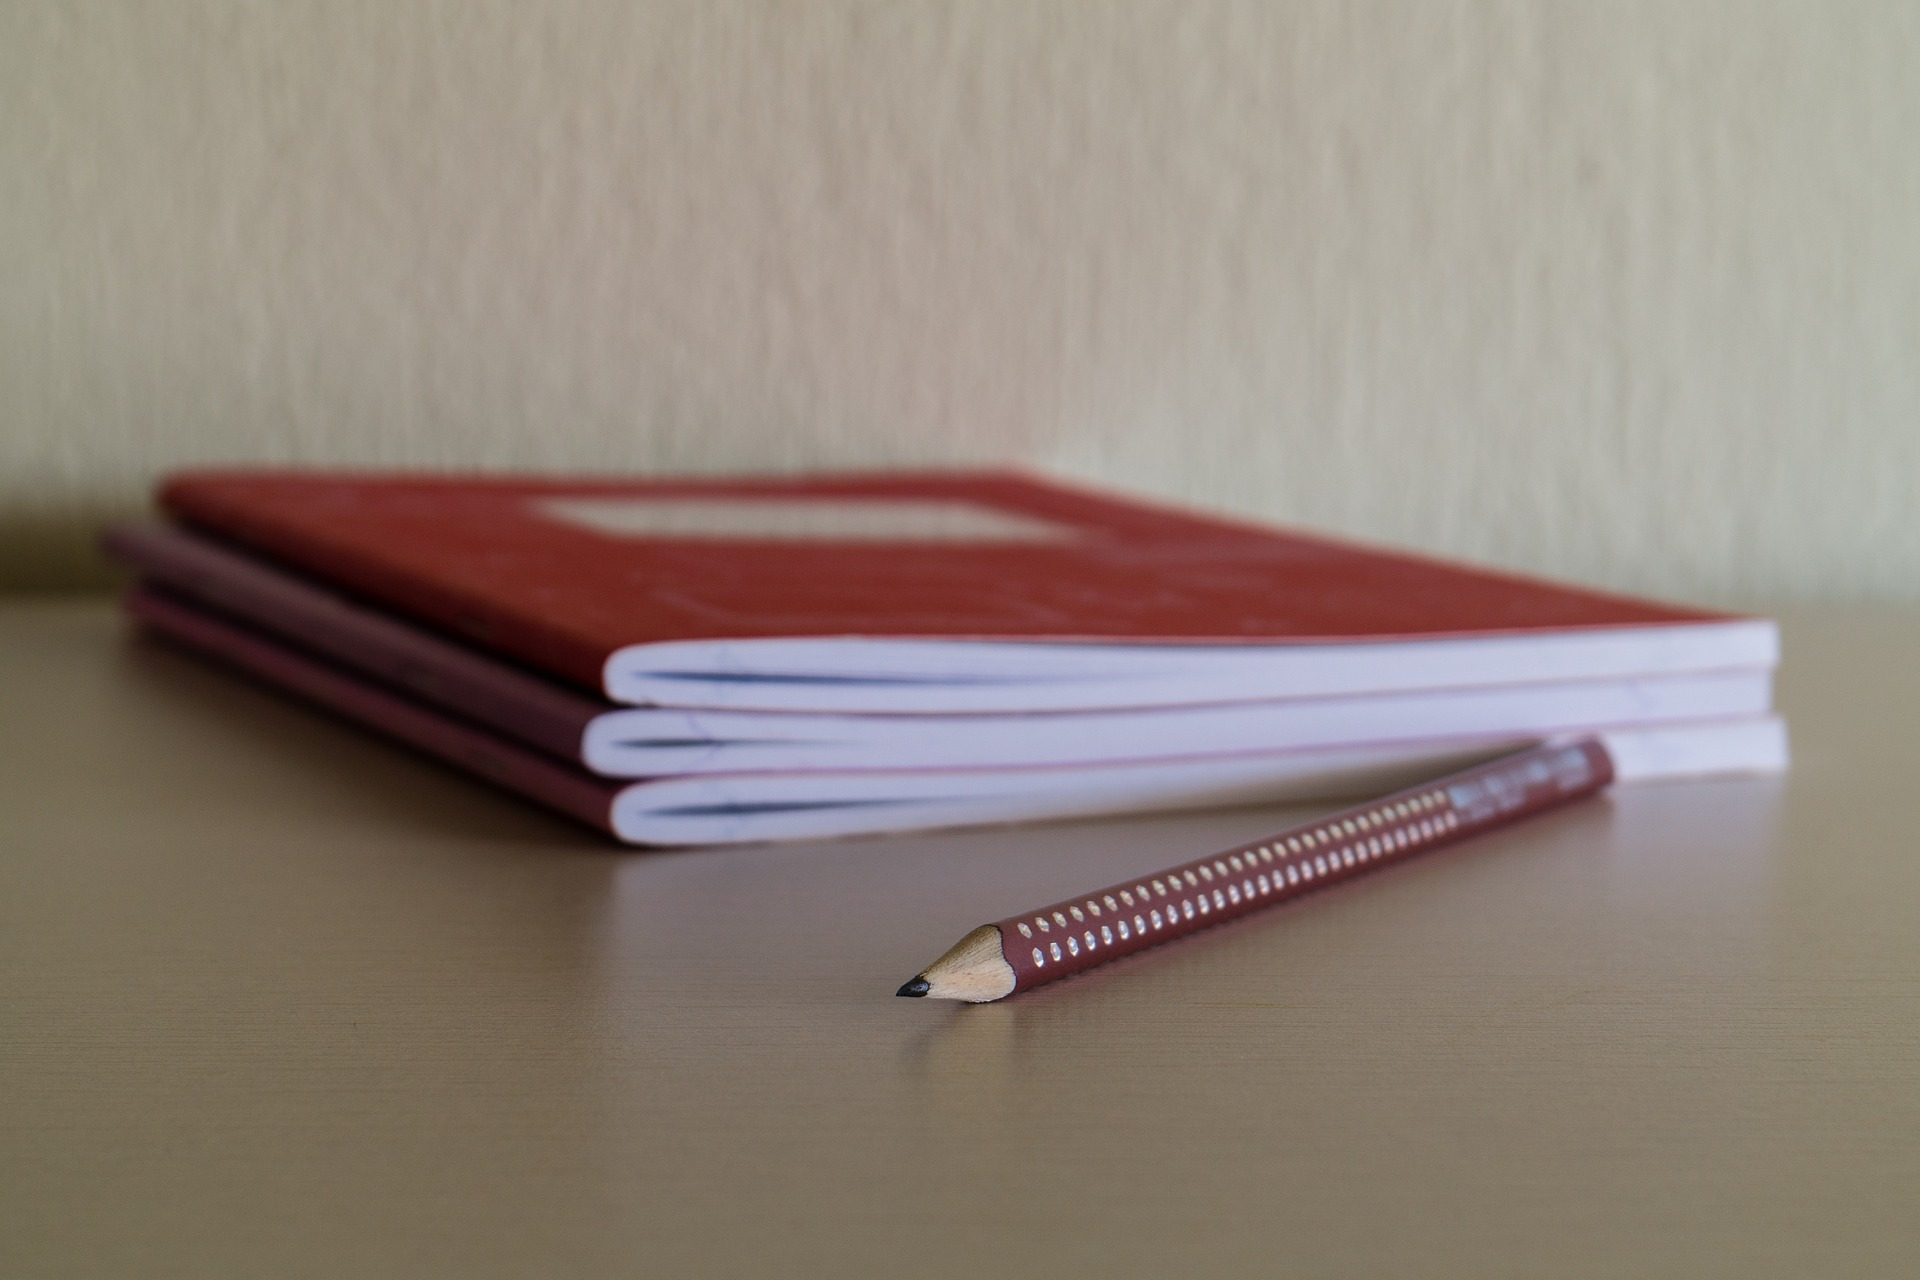 Notebooks and pencil (PD)